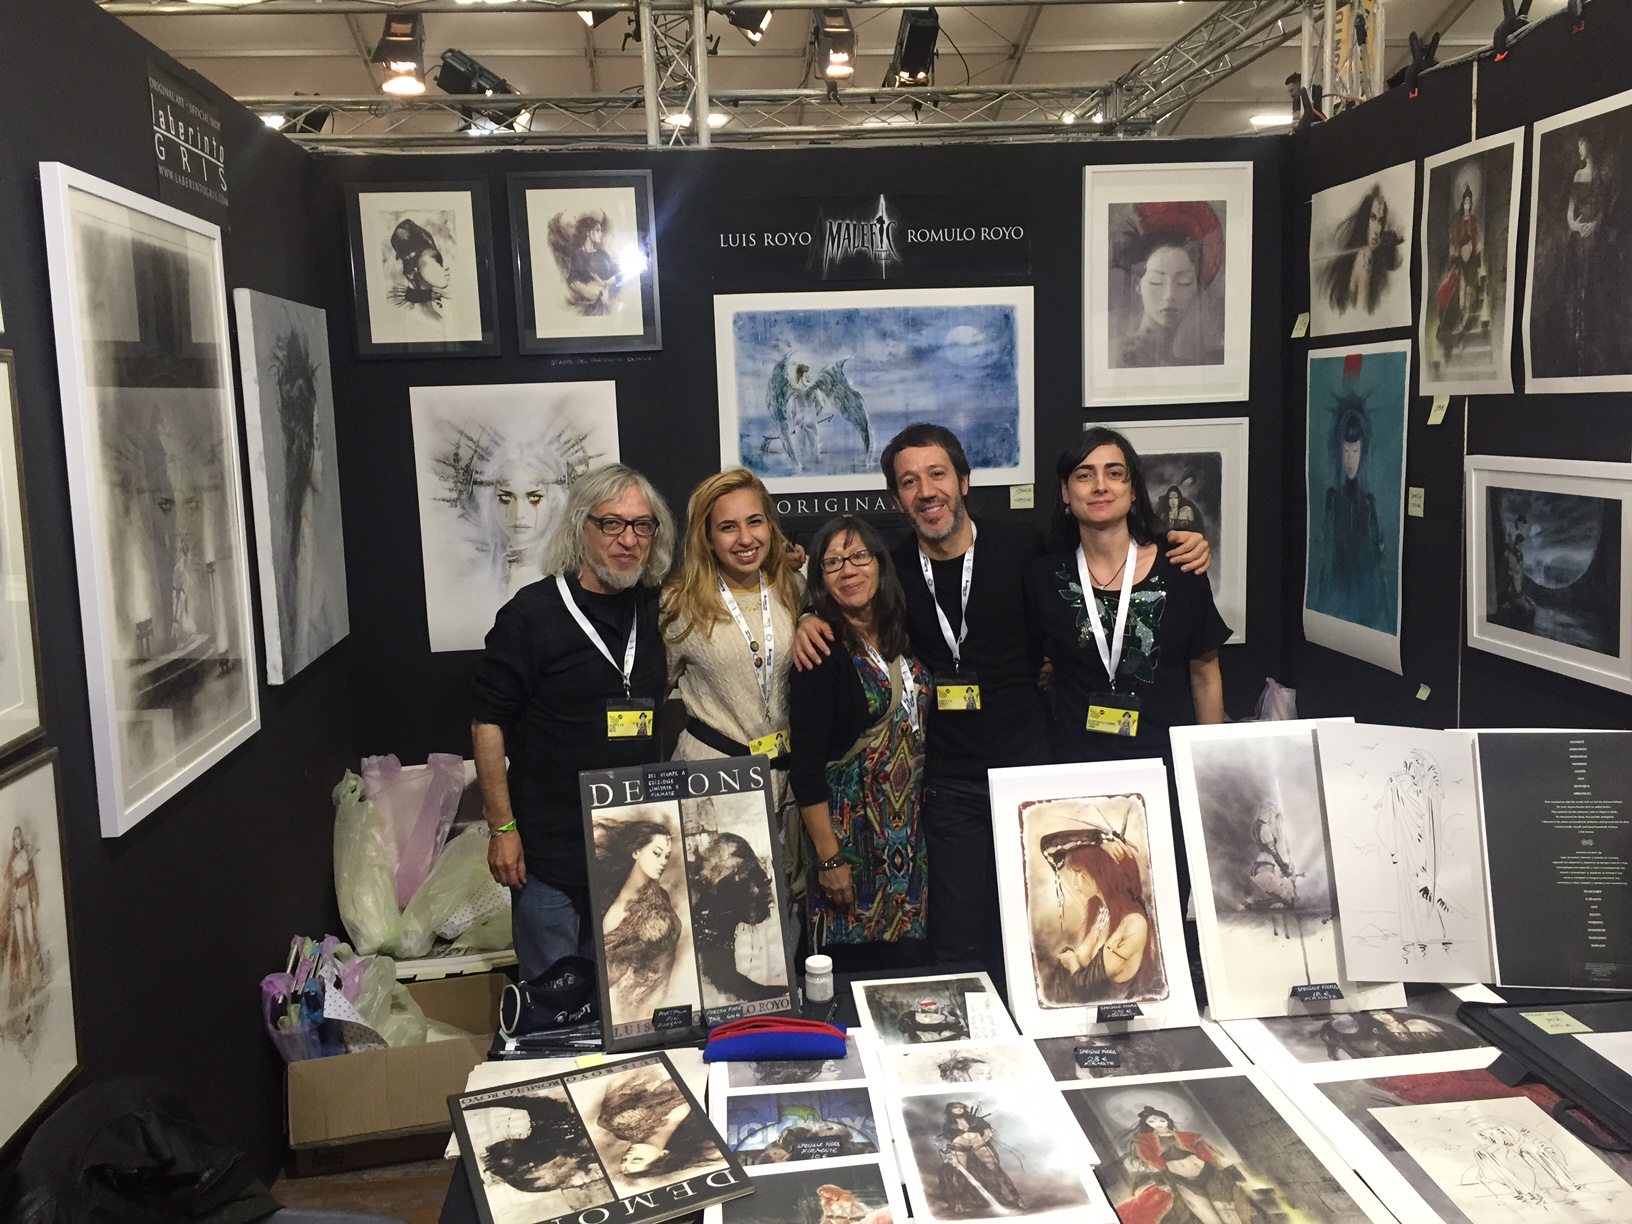 Romulo Royo, Luis Royo, Laberinto Gris - stand Lucca Games and Comics 2016 Gold